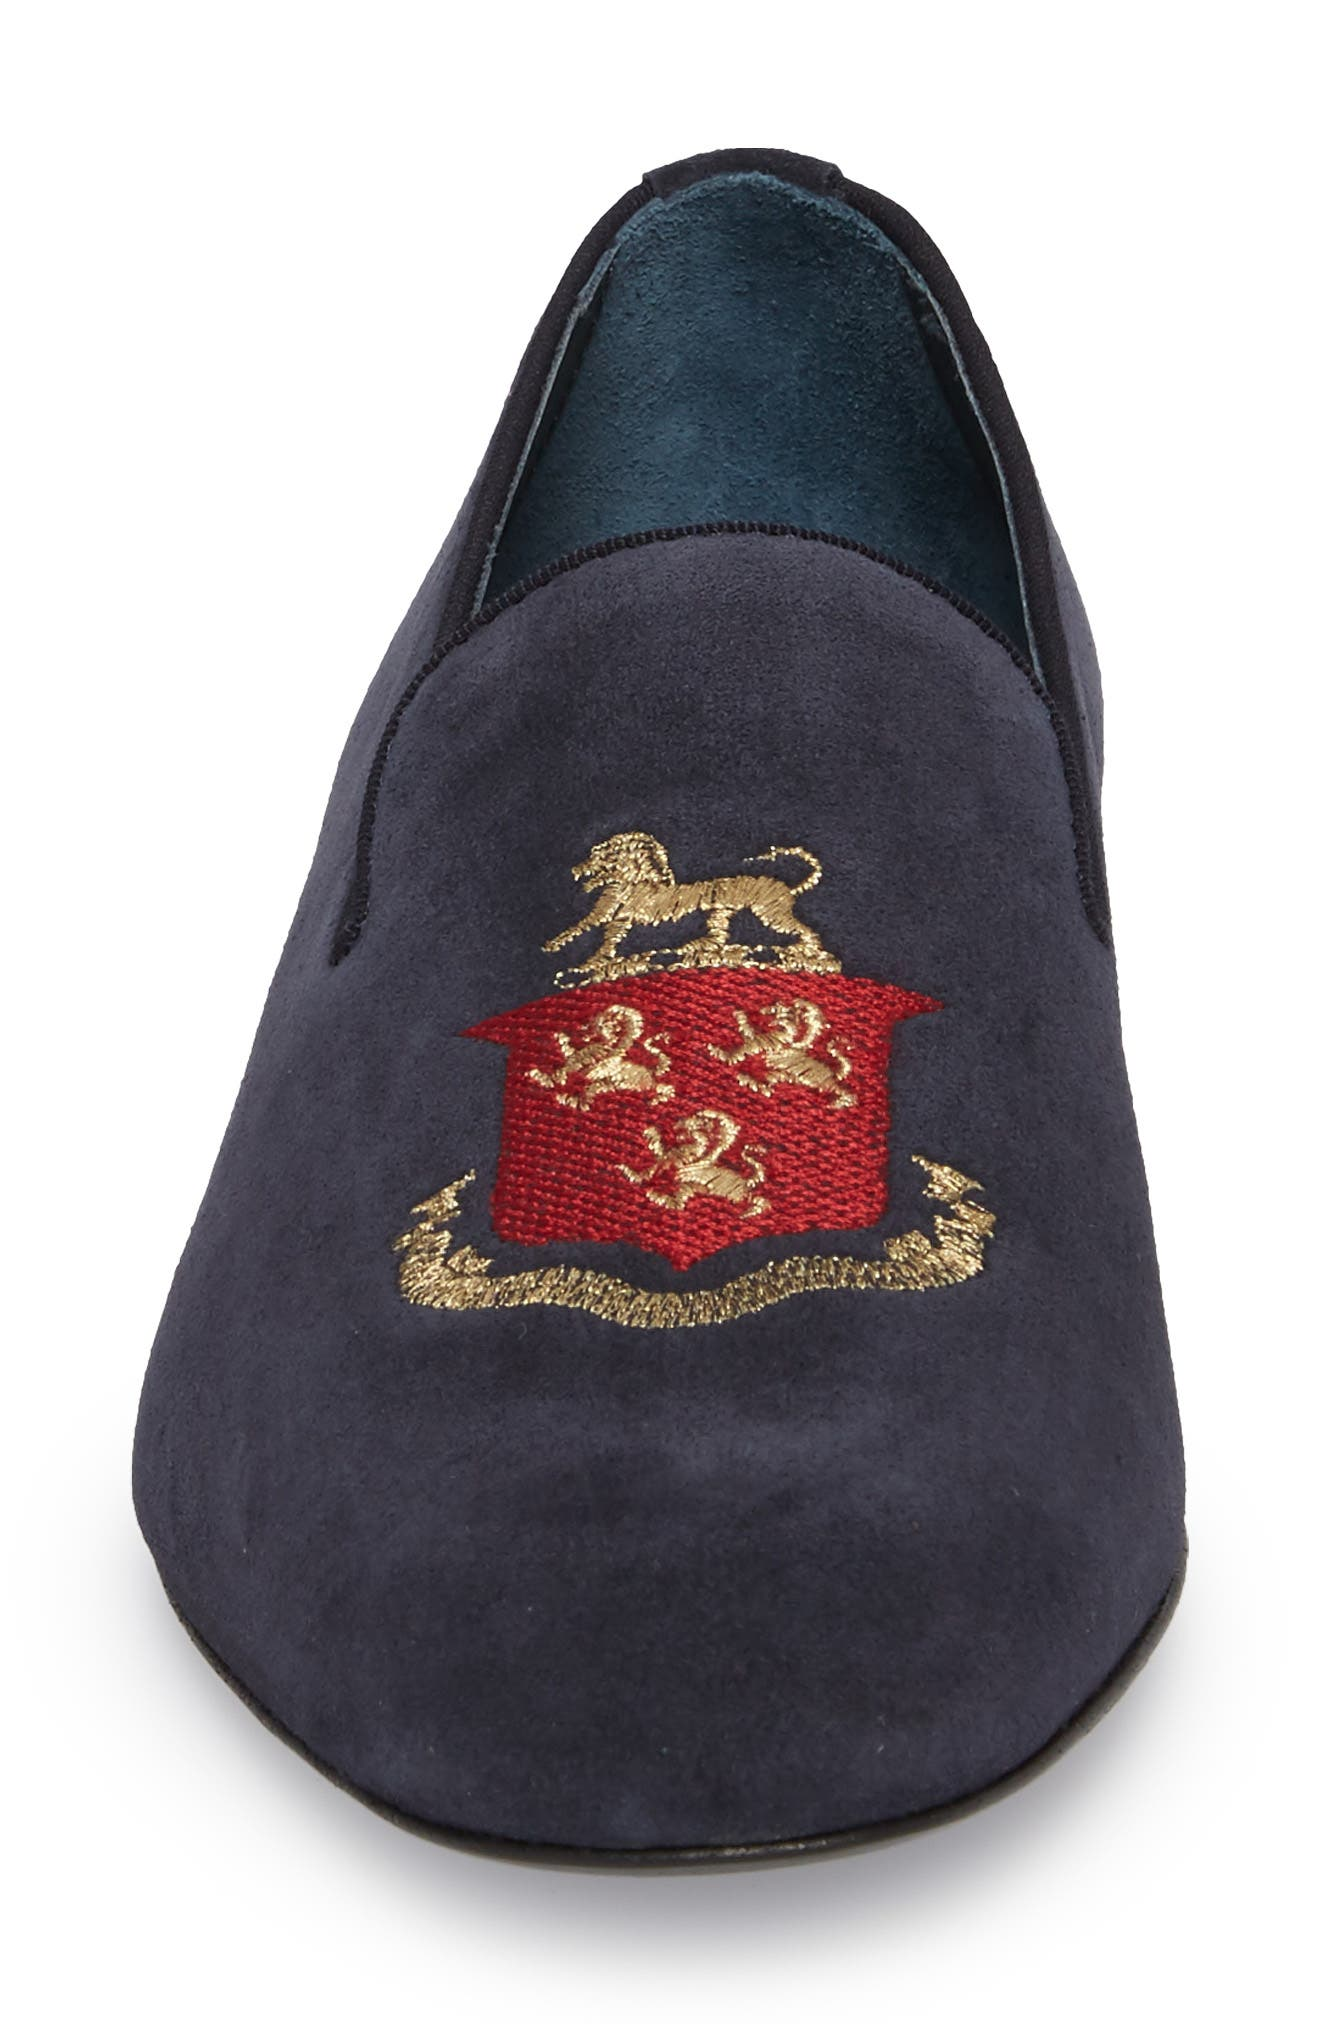 Altos Embroidered Venetian Loafer,                             Alternate thumbnail 4, color,                             NAVY